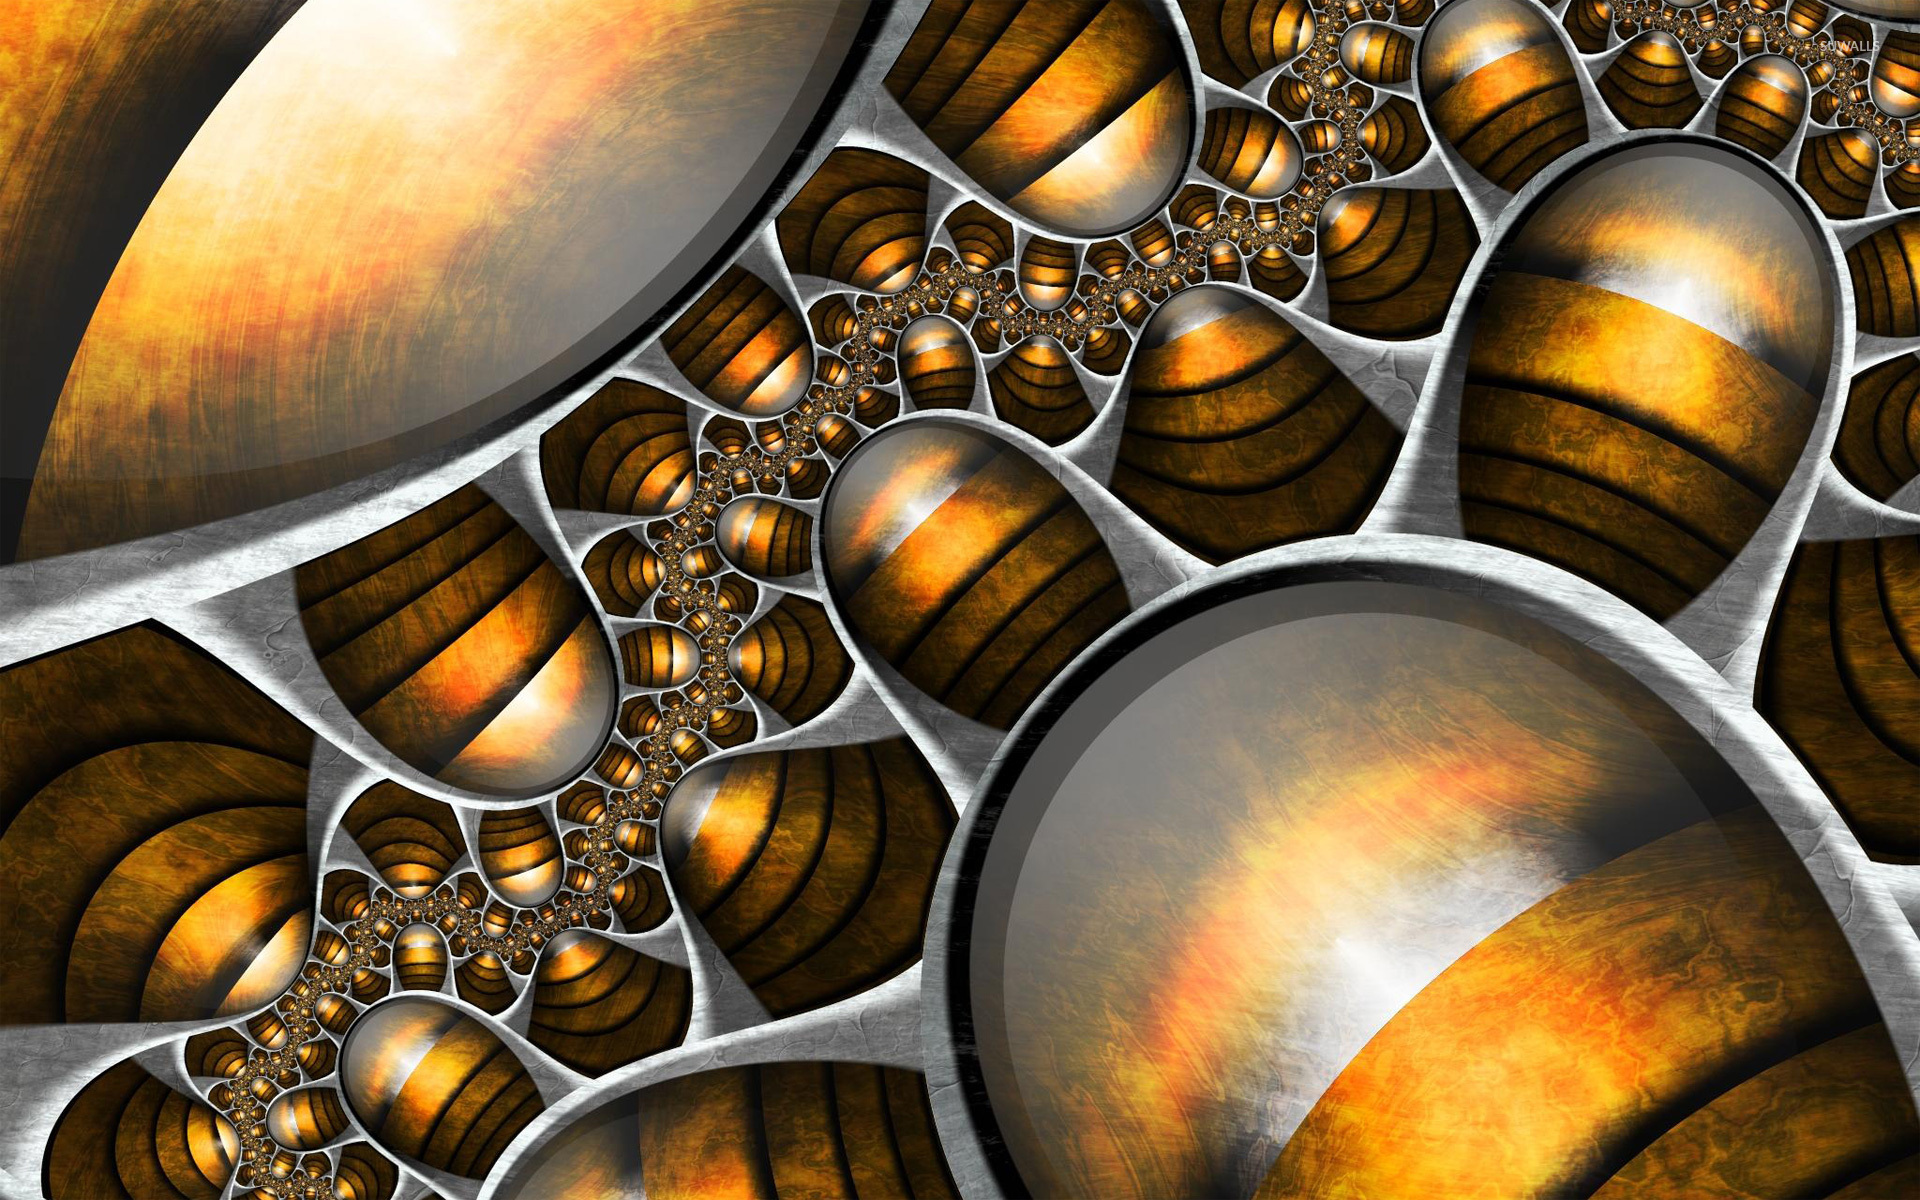 gold abstract wallpaper wch7i - photo #22